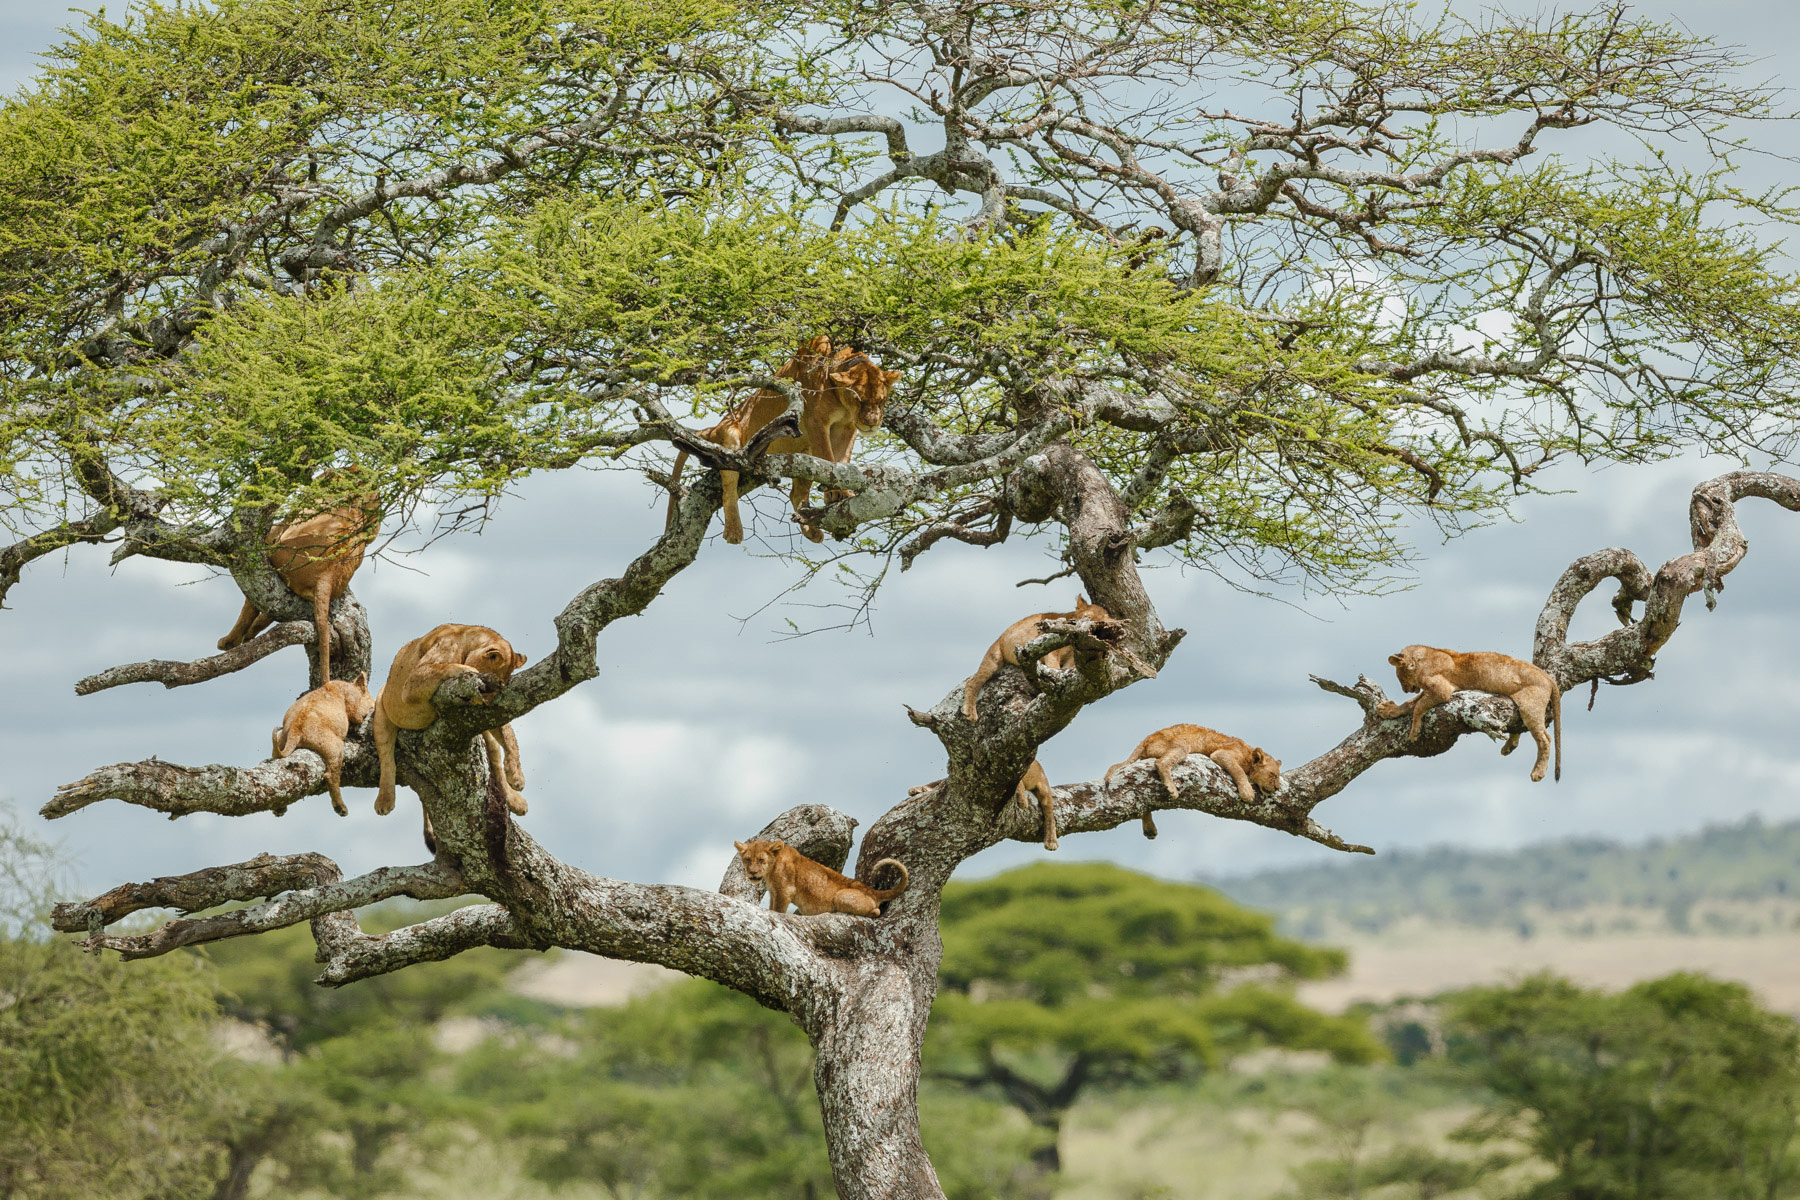 Lions-in-a-tree-tight-©Kym-Illman